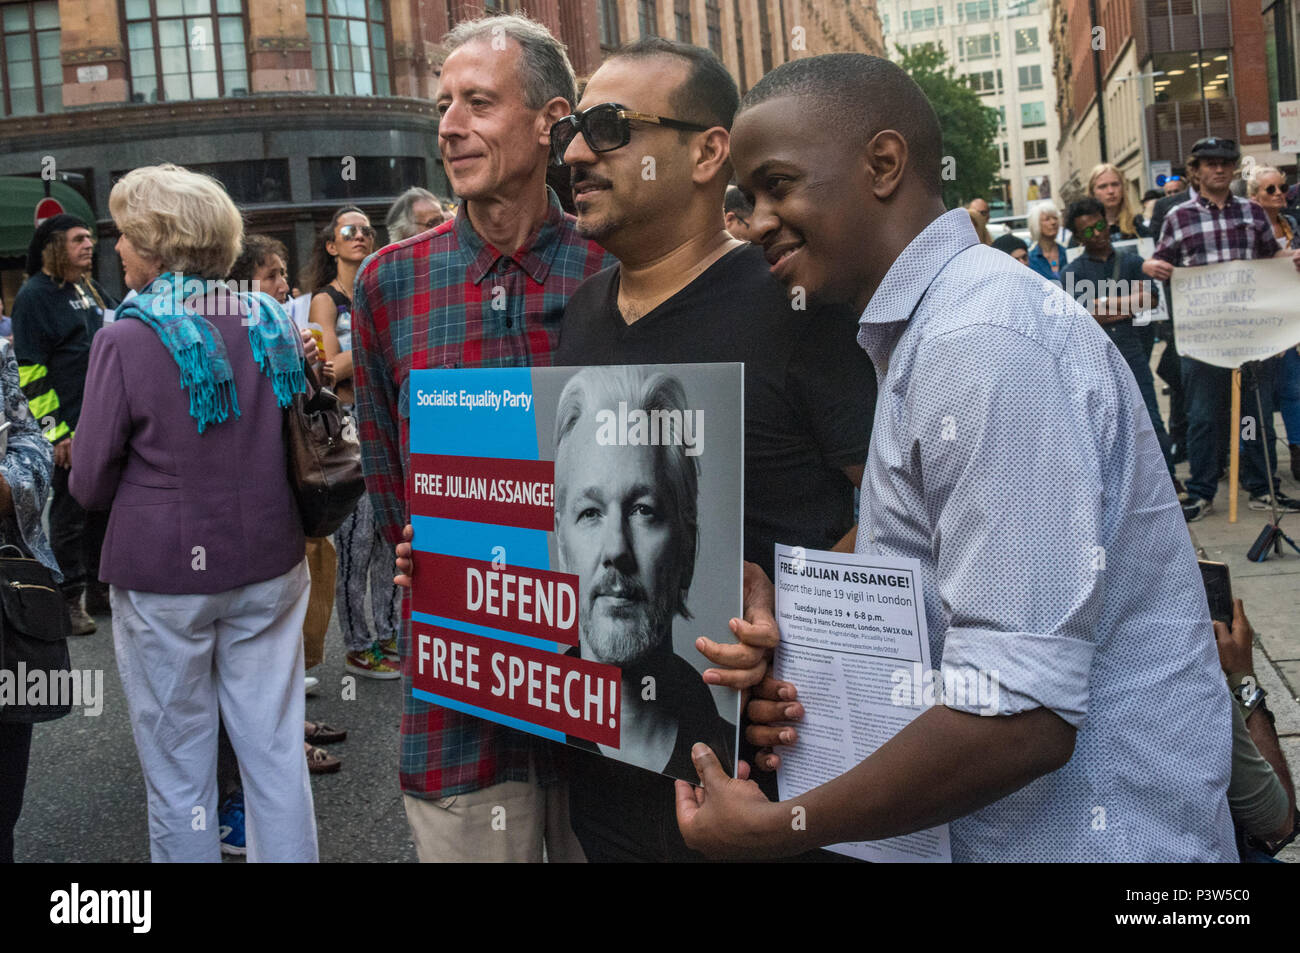 London, UK. 19th June 2018. Peter Tatchell poses for a photograph with others at the rally outside the Ecuadorian Embassy in London calling for Julian Assange to be allowed safe passage to the place of his choice to mark six years since he was given asylum there. They called for the UK authorities to allow him to leave the embassy and go to the country of his choice without being arrested. Credit: Peter Marshall/Alamy Live News - Stock Image